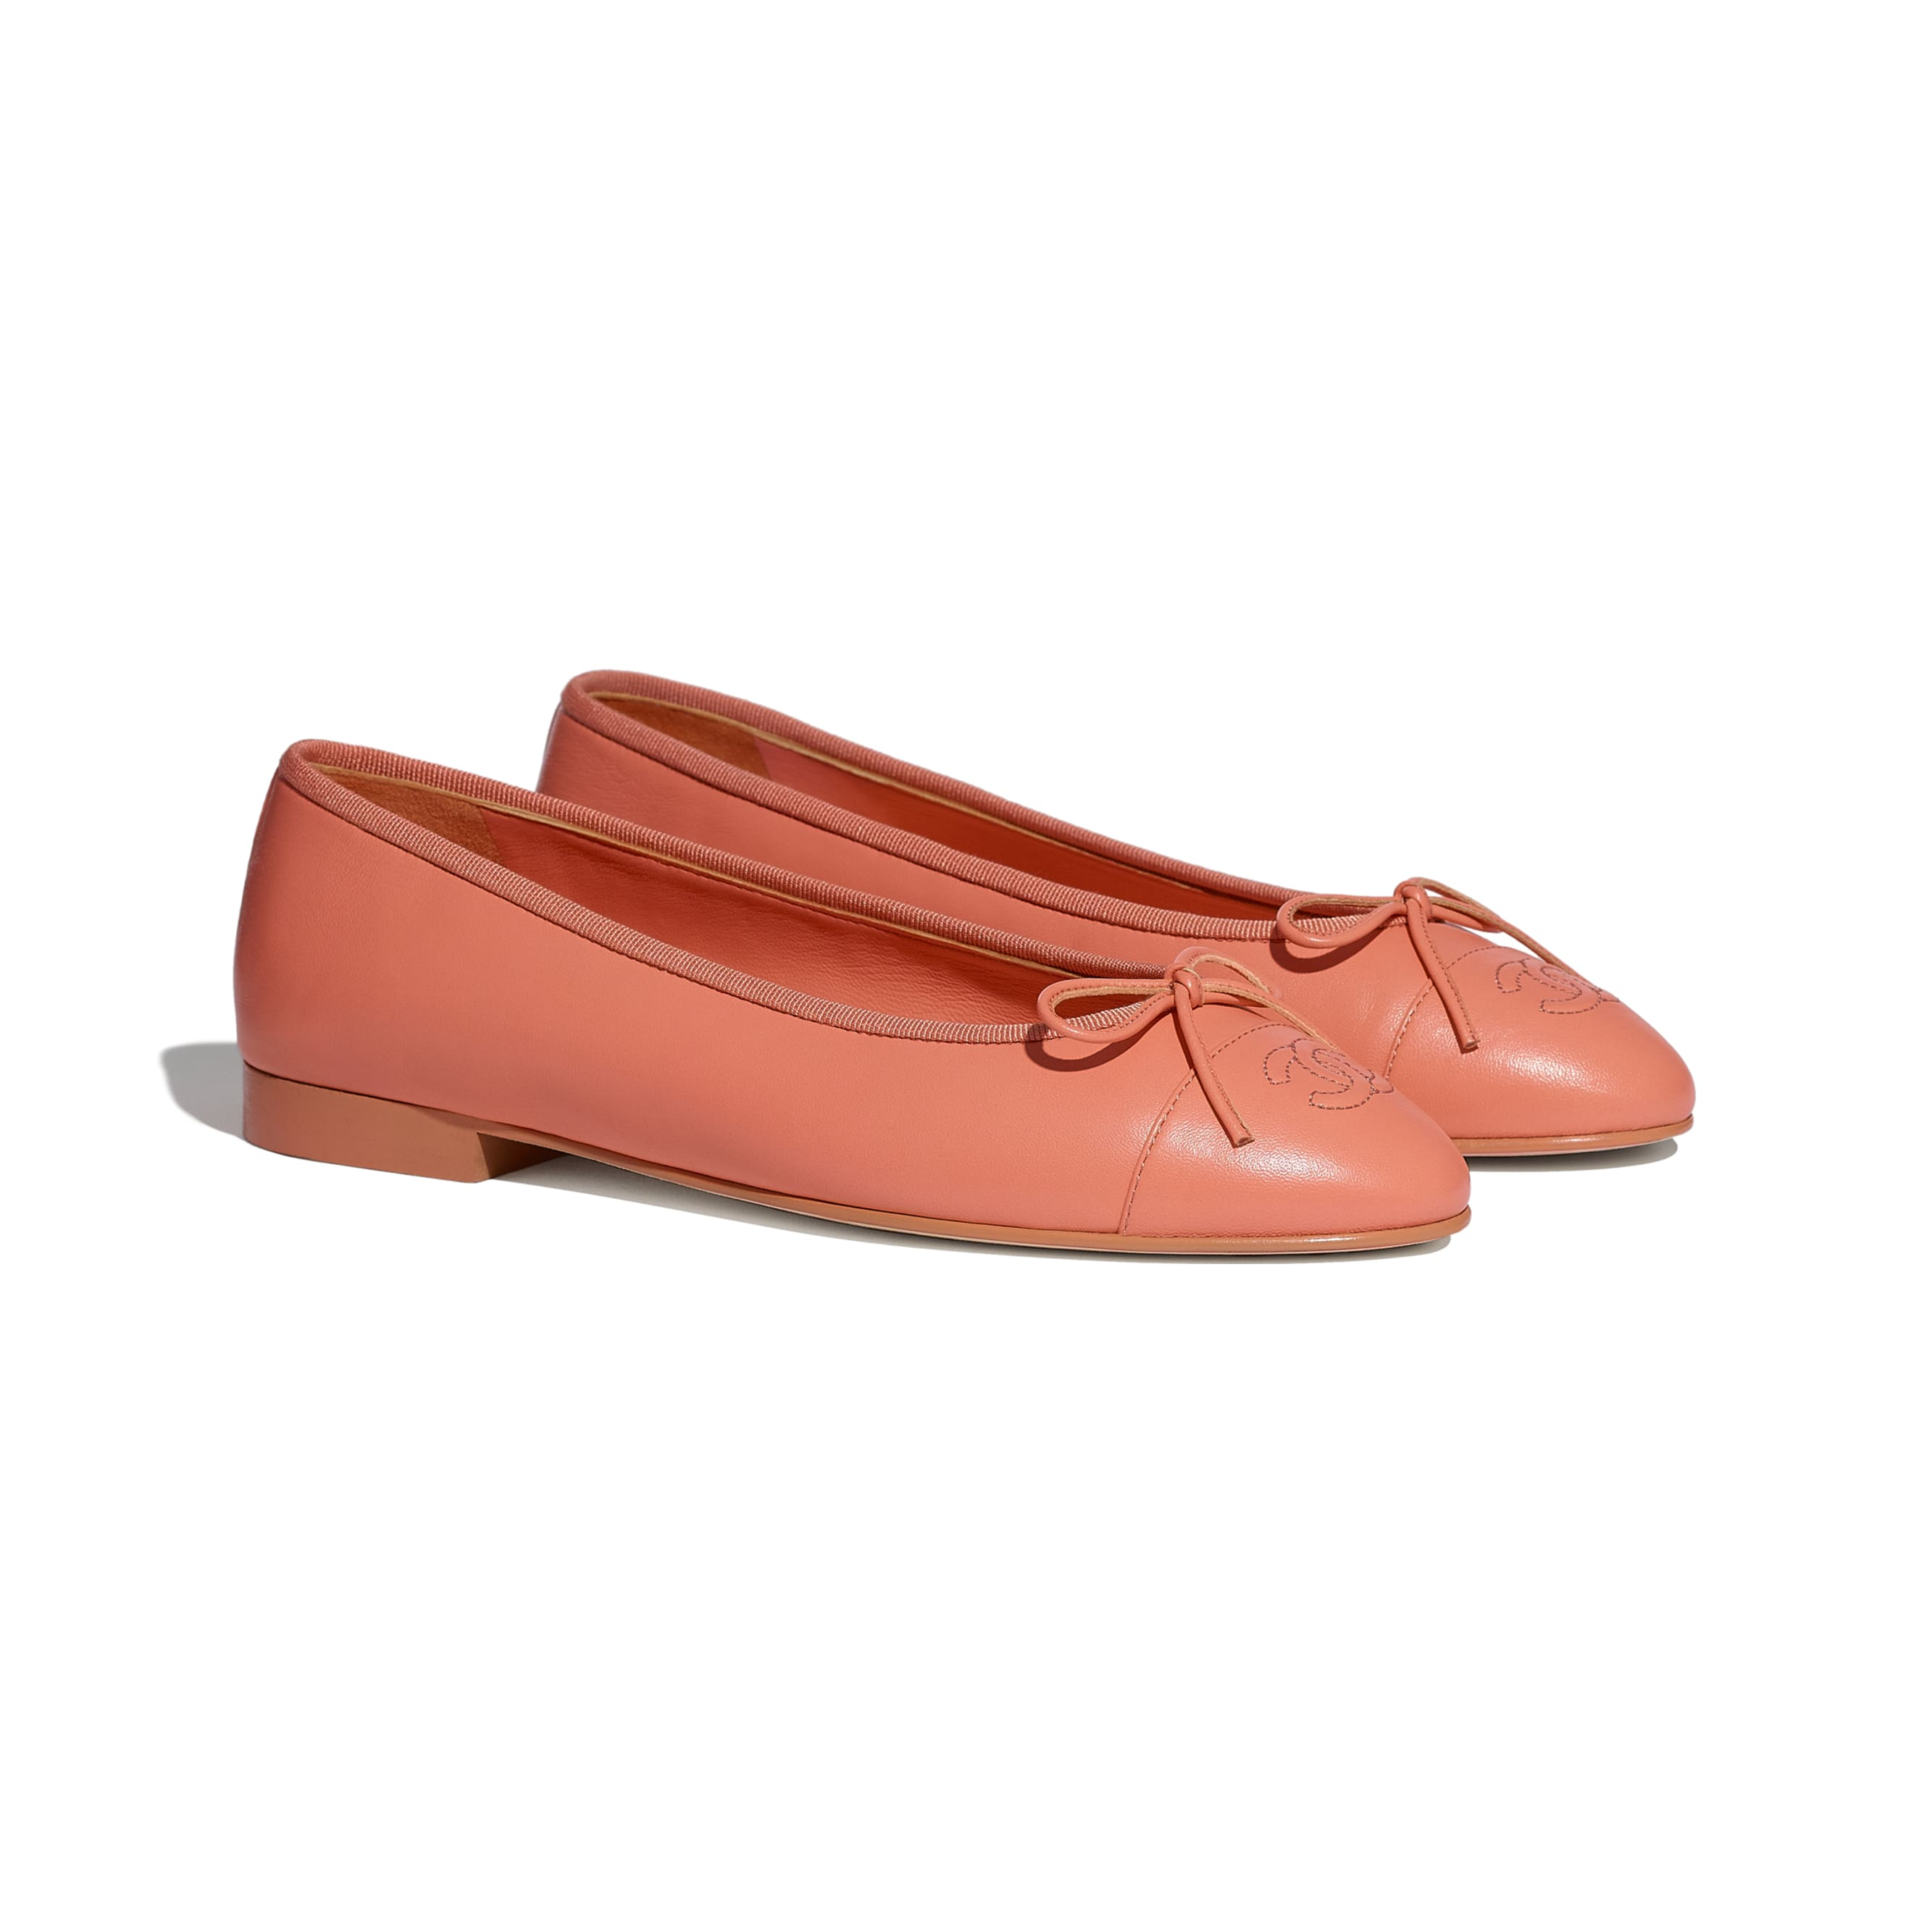 Flats - Neon Orange - Lambskin - CHANEL - Alternative view - see standard sized version